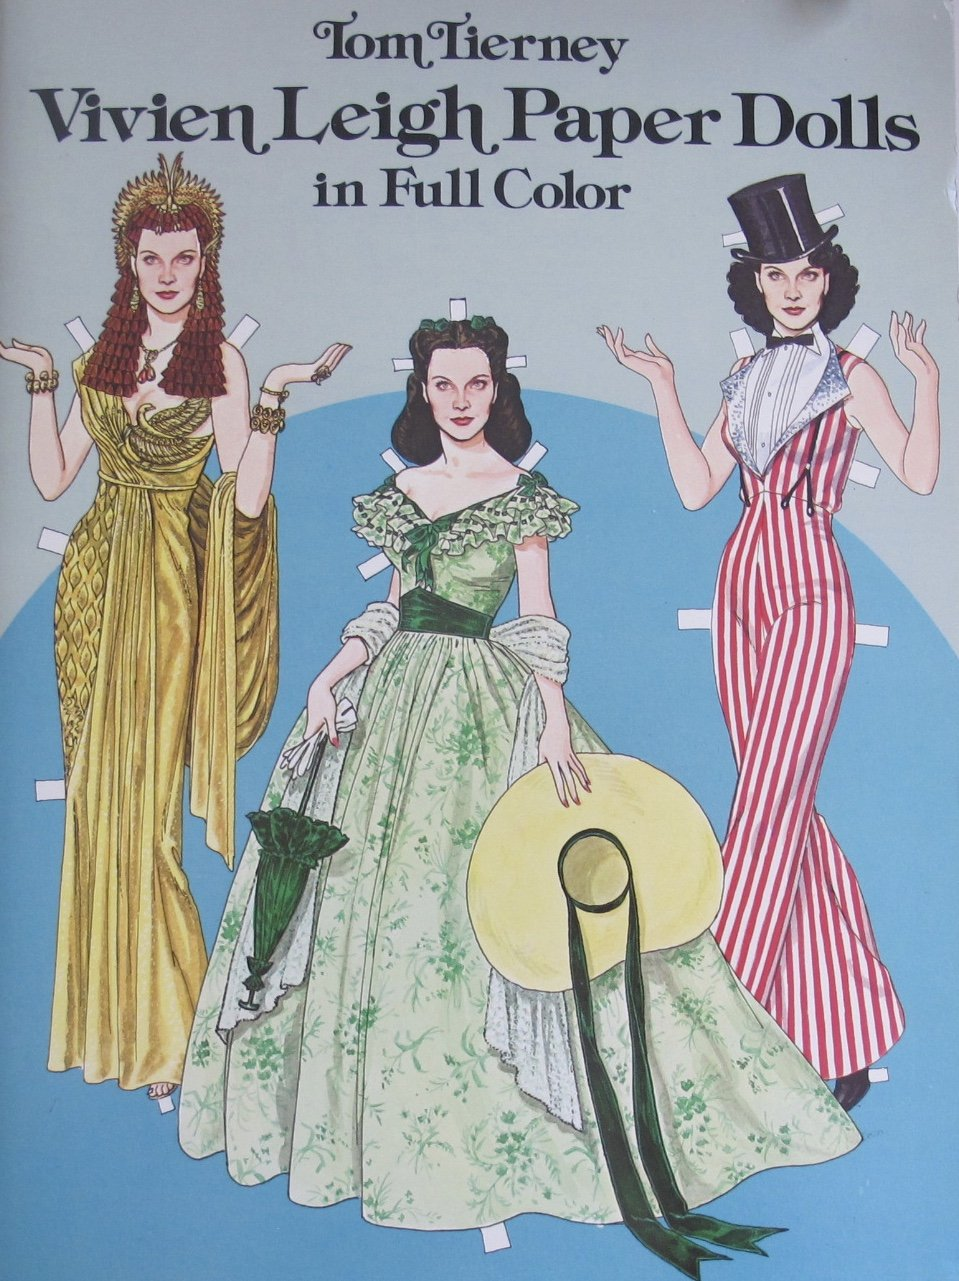 Tom Tierney VIVIEN LEIGH PAPER DOLLS BOOK (UNCUT) in Full COLOR w 1 Card Stock DOLL & 28 COSTUMES/Fashions (1981 Dover)